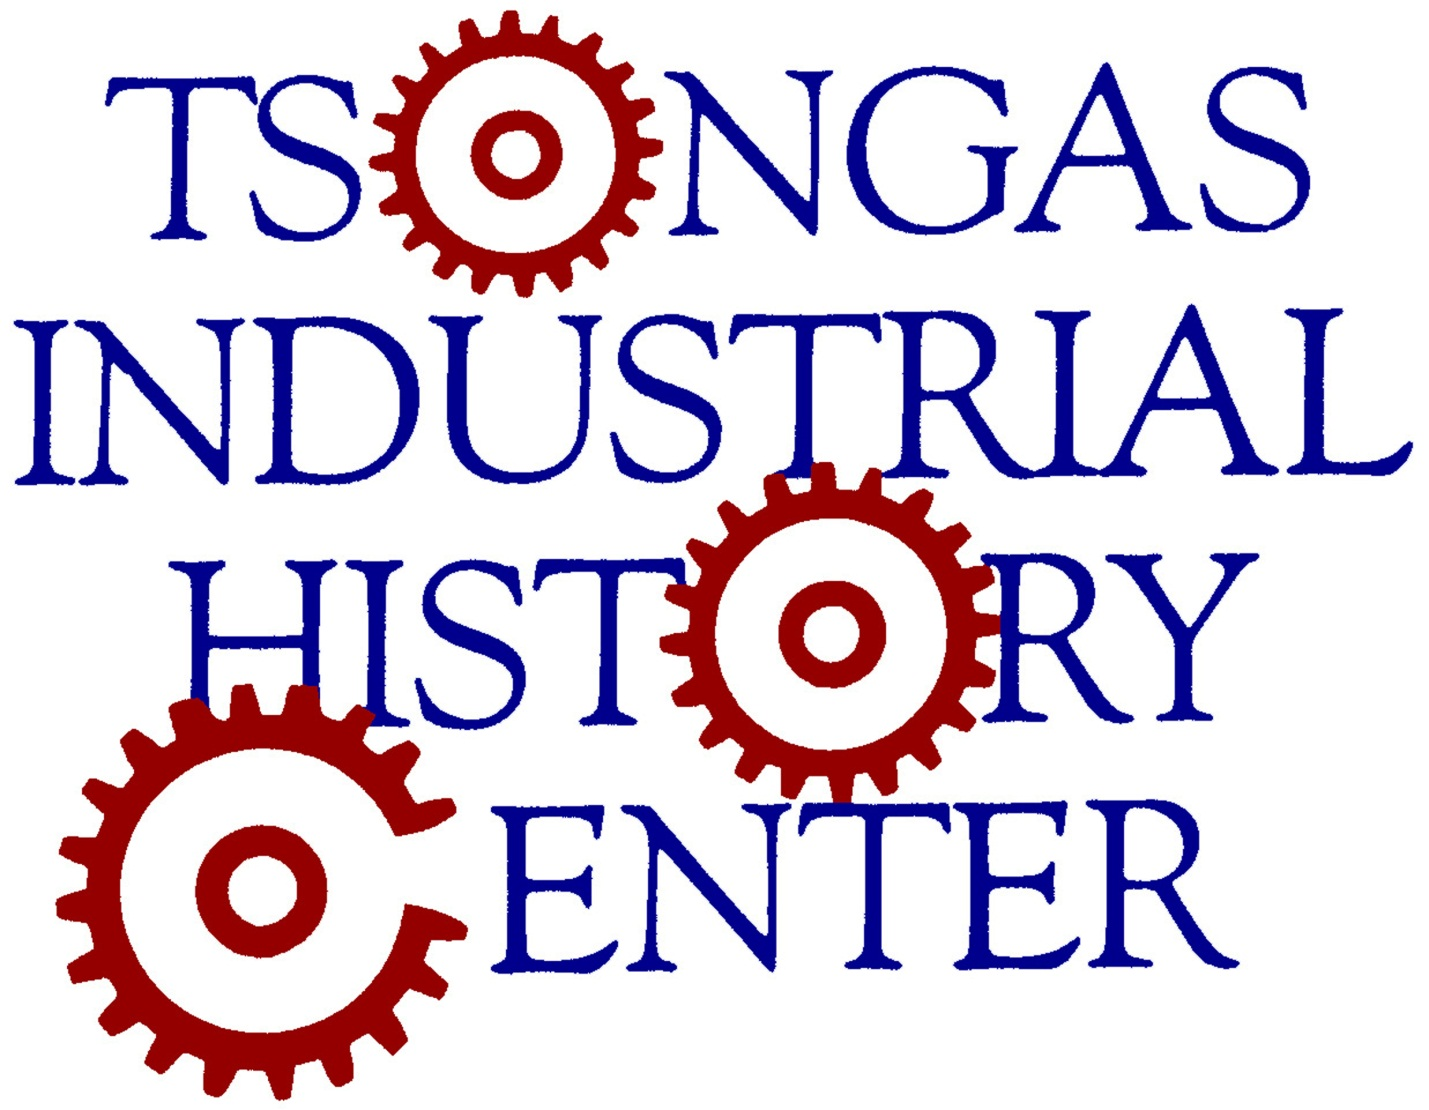 Tsongas Industrial History Center at Lowell National Historical Park